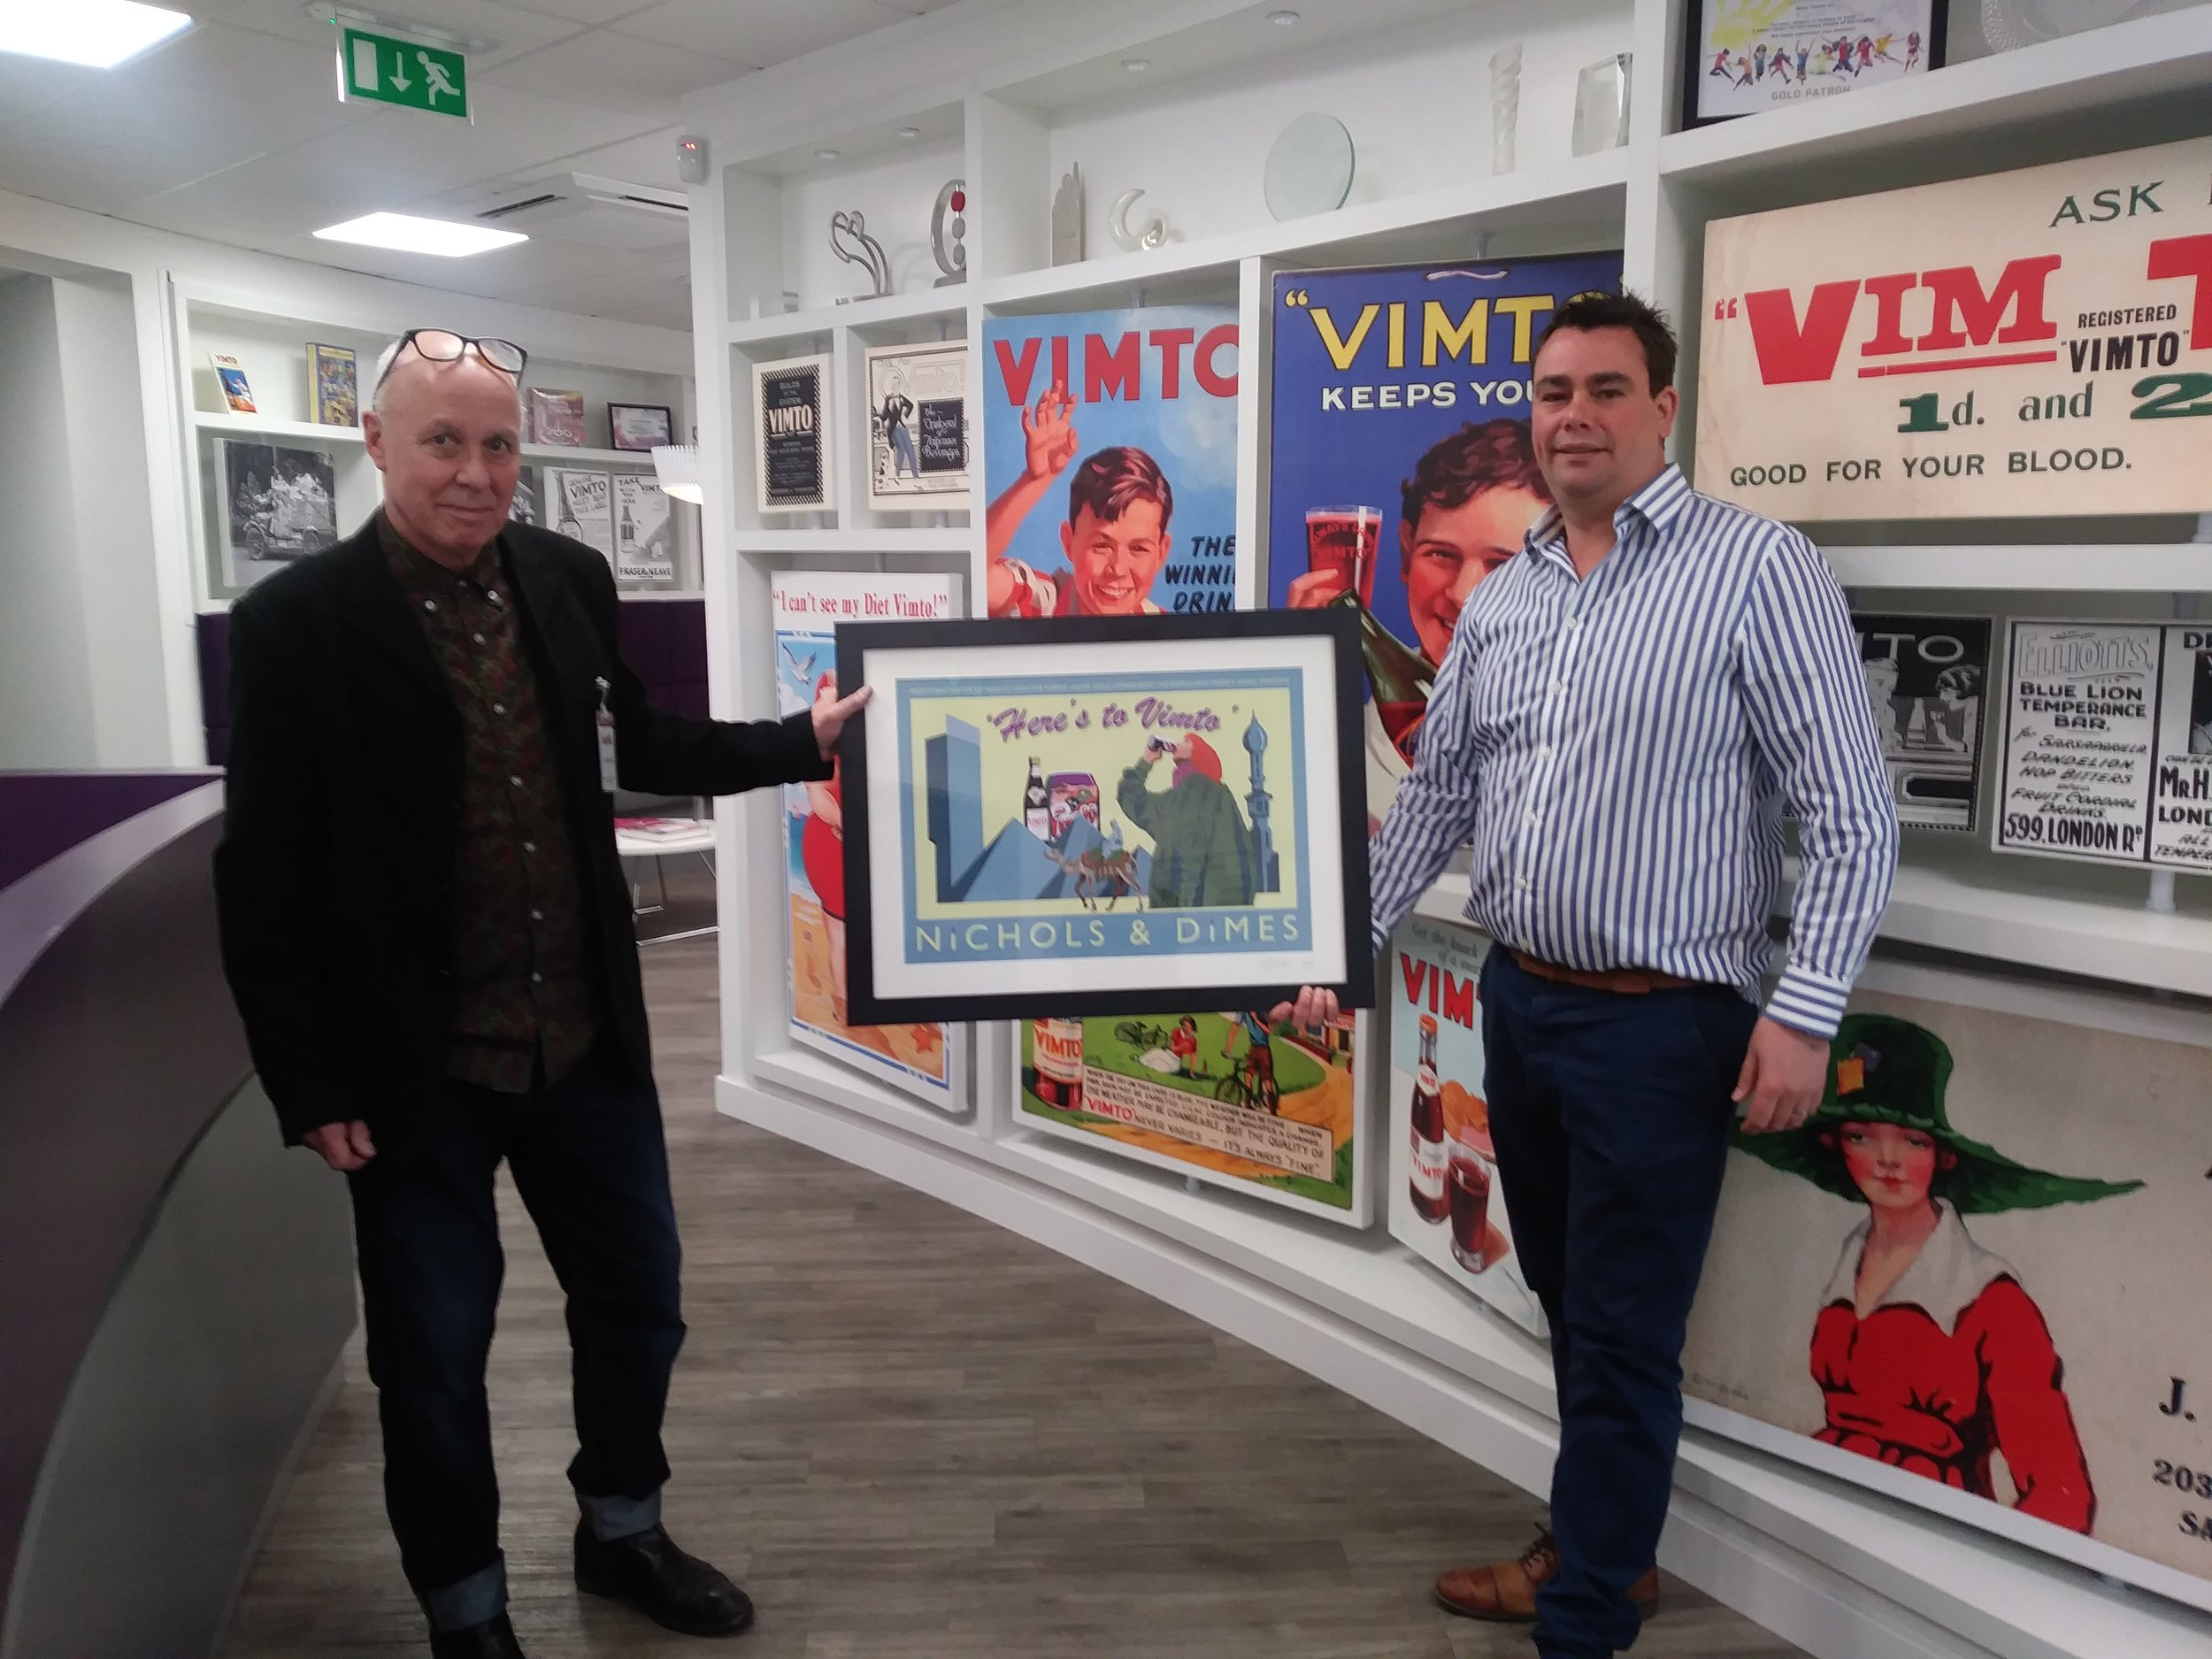 Handing over the Vimto poster to James Nichols